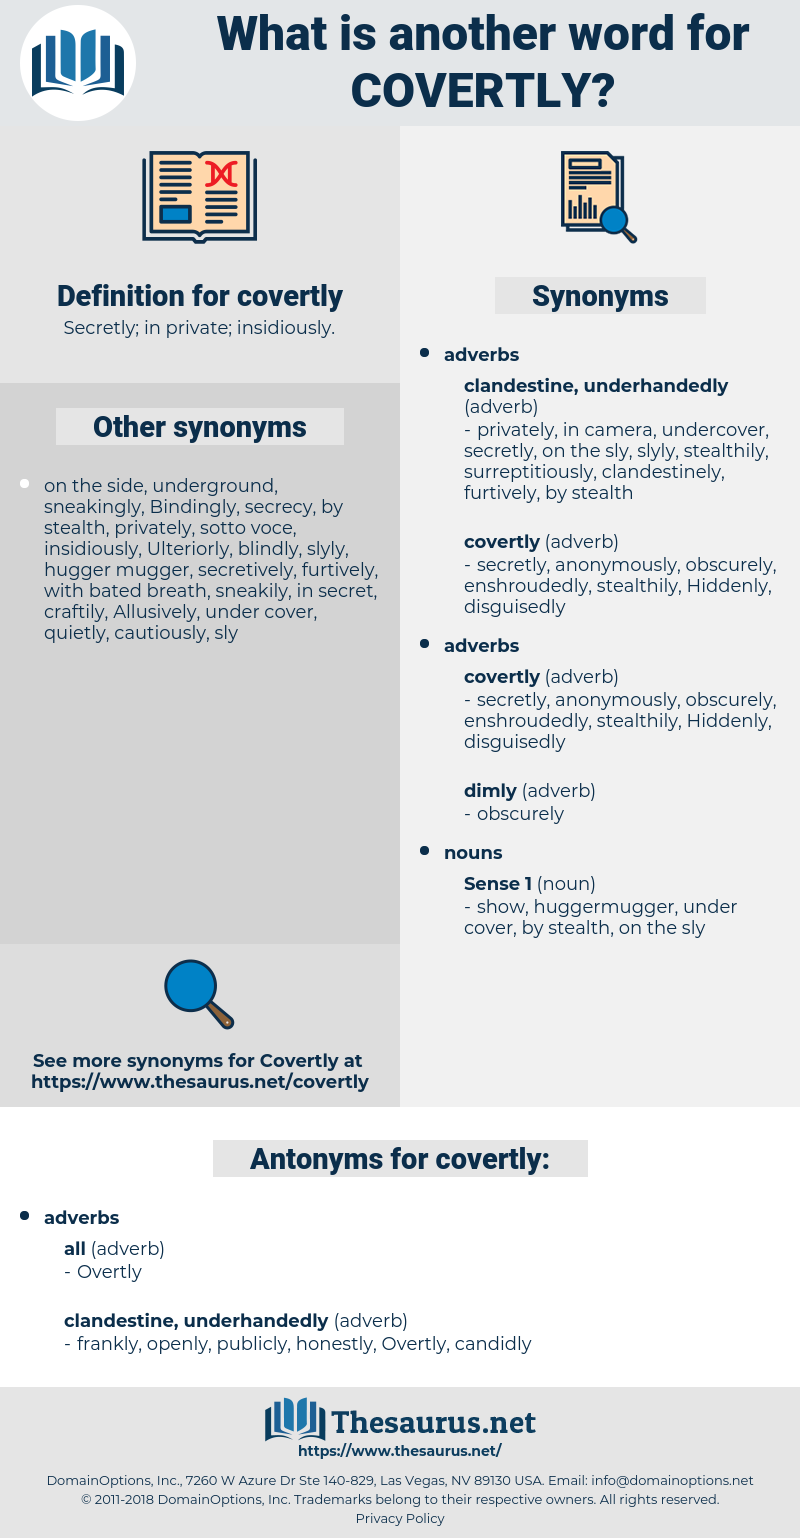 covertly, synonym covertly, another word for covertly, words like covertly, thesaurus covertly